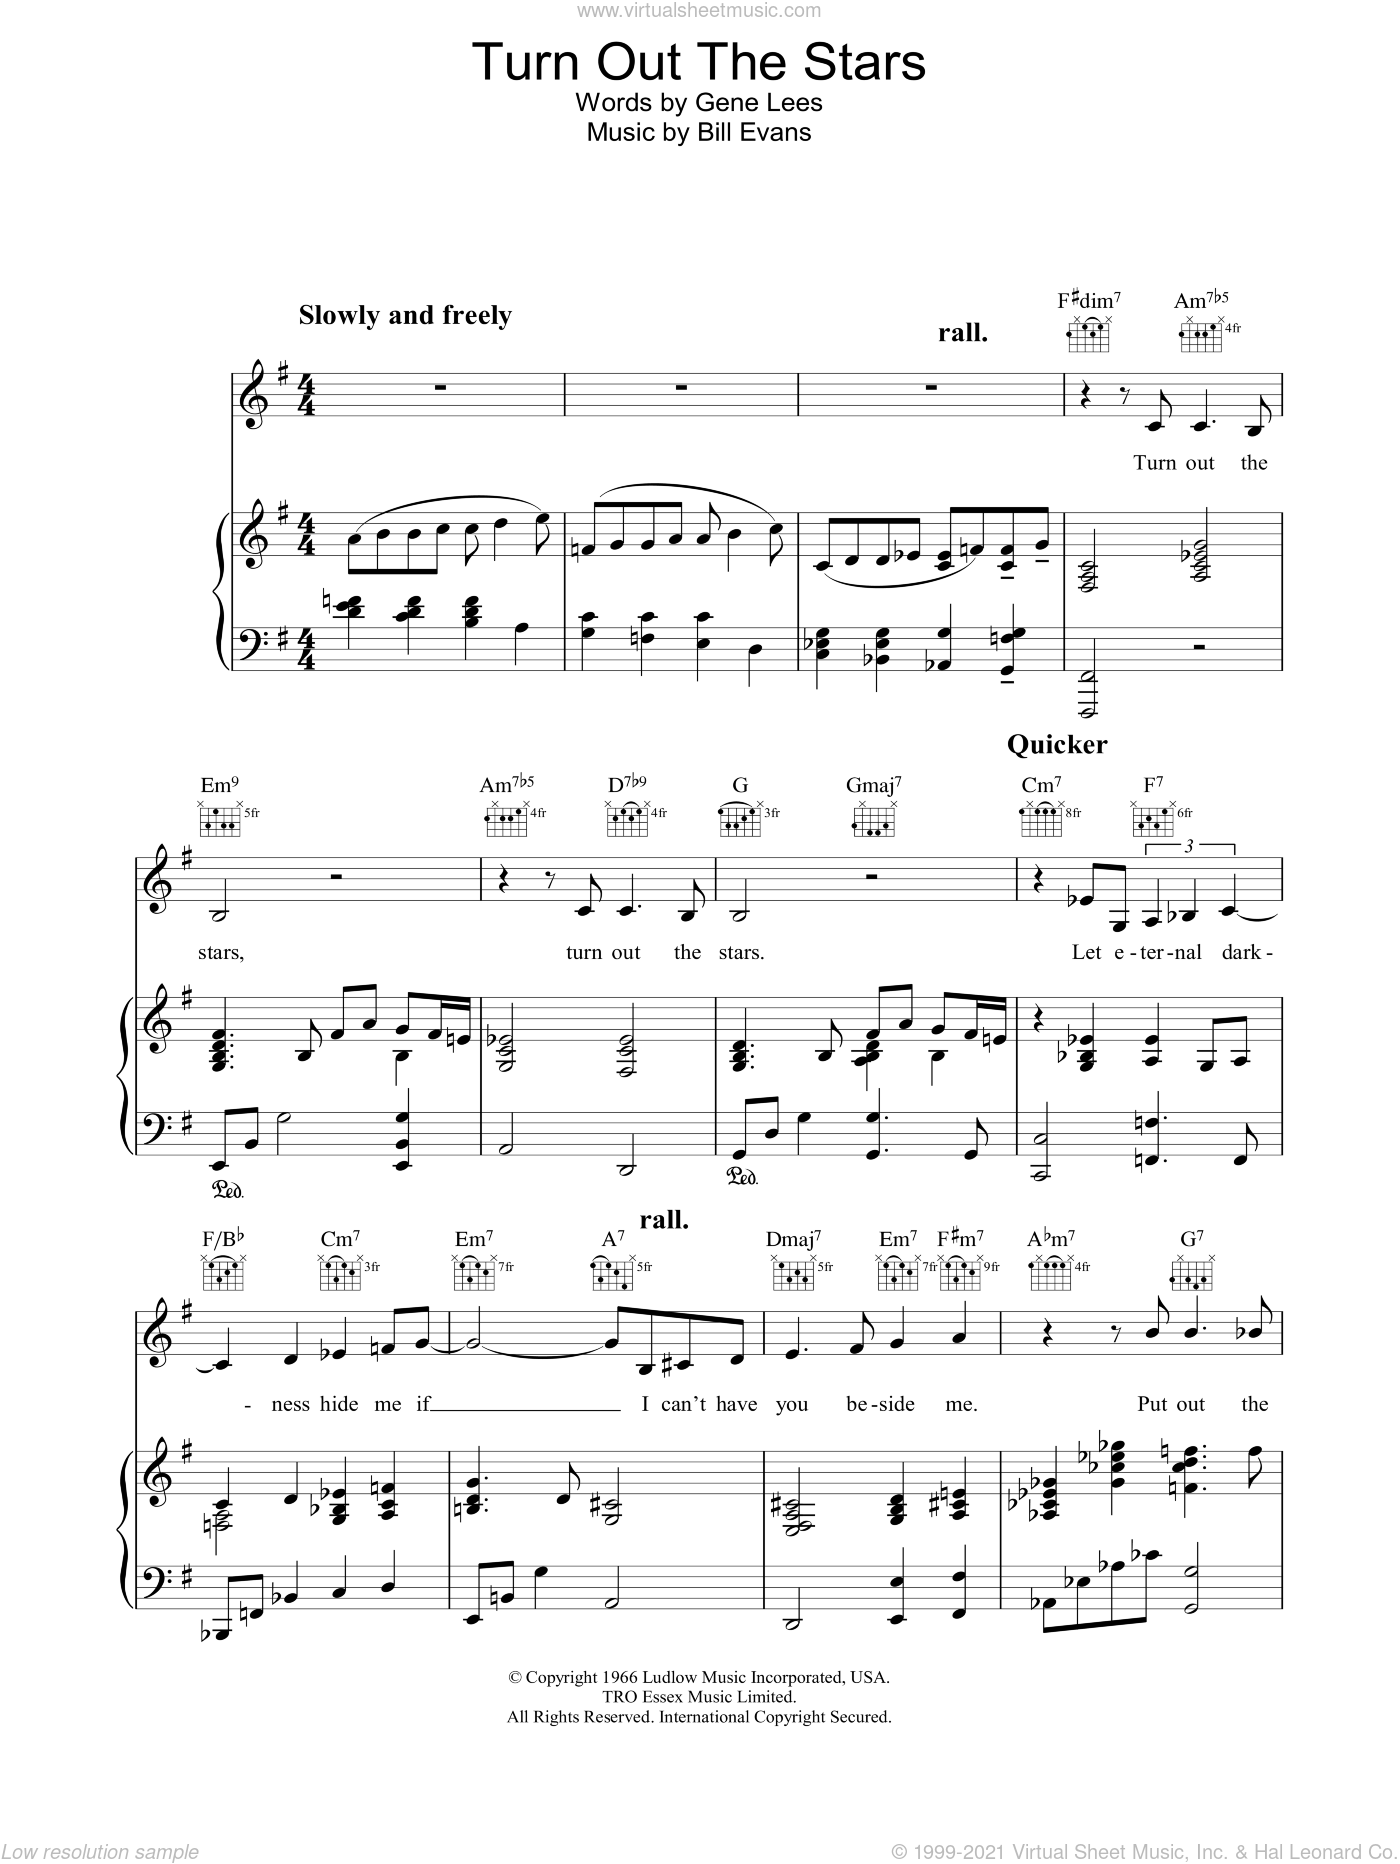 Turn Out The Stars sheet music for voice, piano or guitar by Jane Monheit